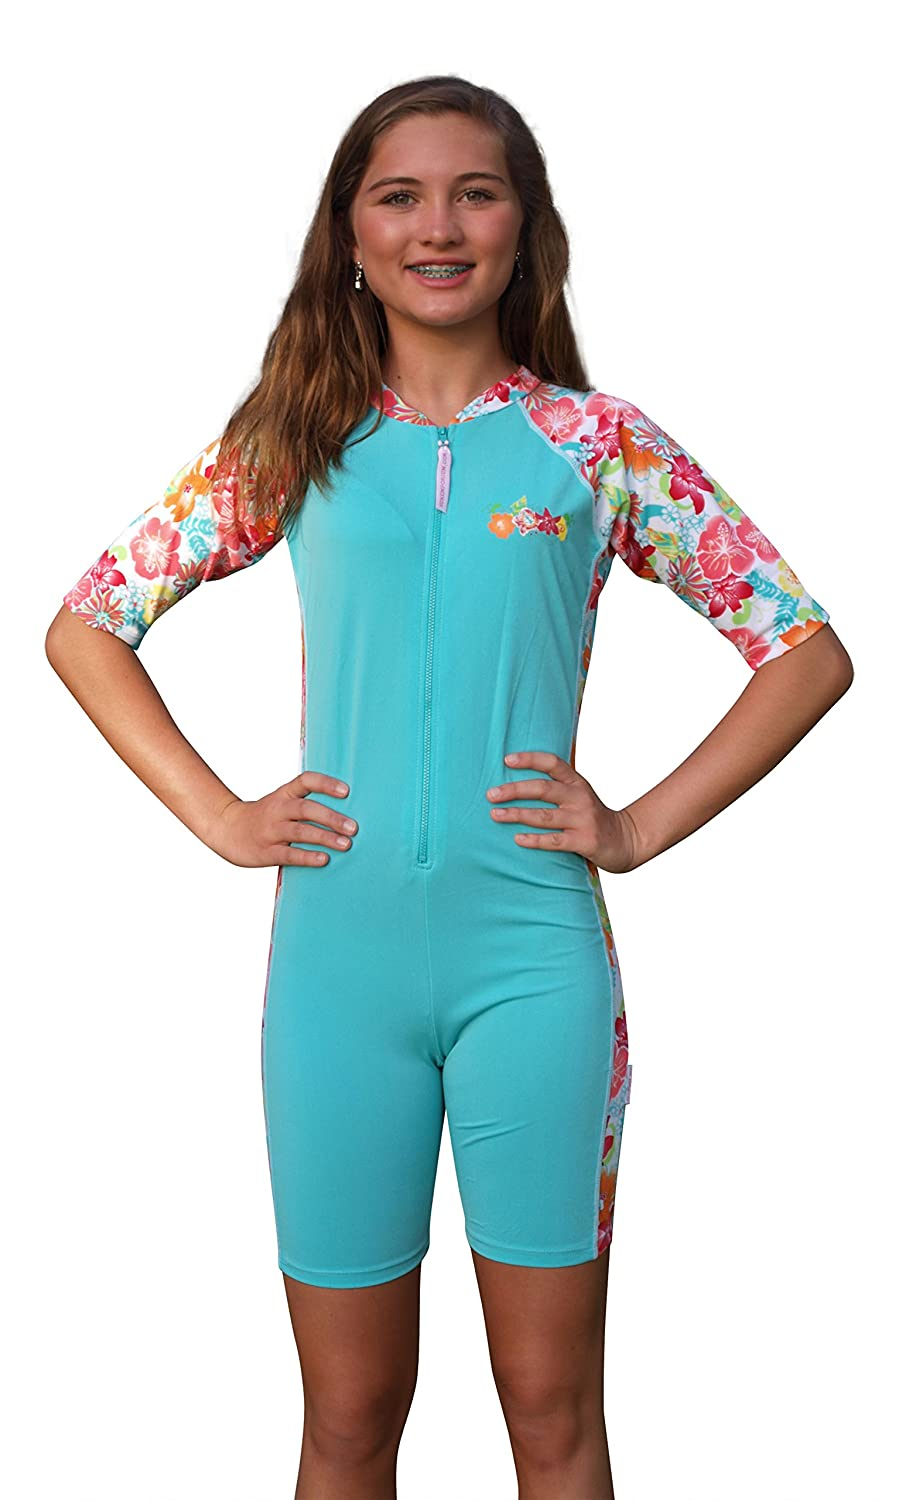 c1226ddce6a4e Amazon.com  Sun Emporium Girls SPF Protective UV Swimsuit - Turquoise  Bathing Suit - UPF SPF Protection  Sports   Outdoors